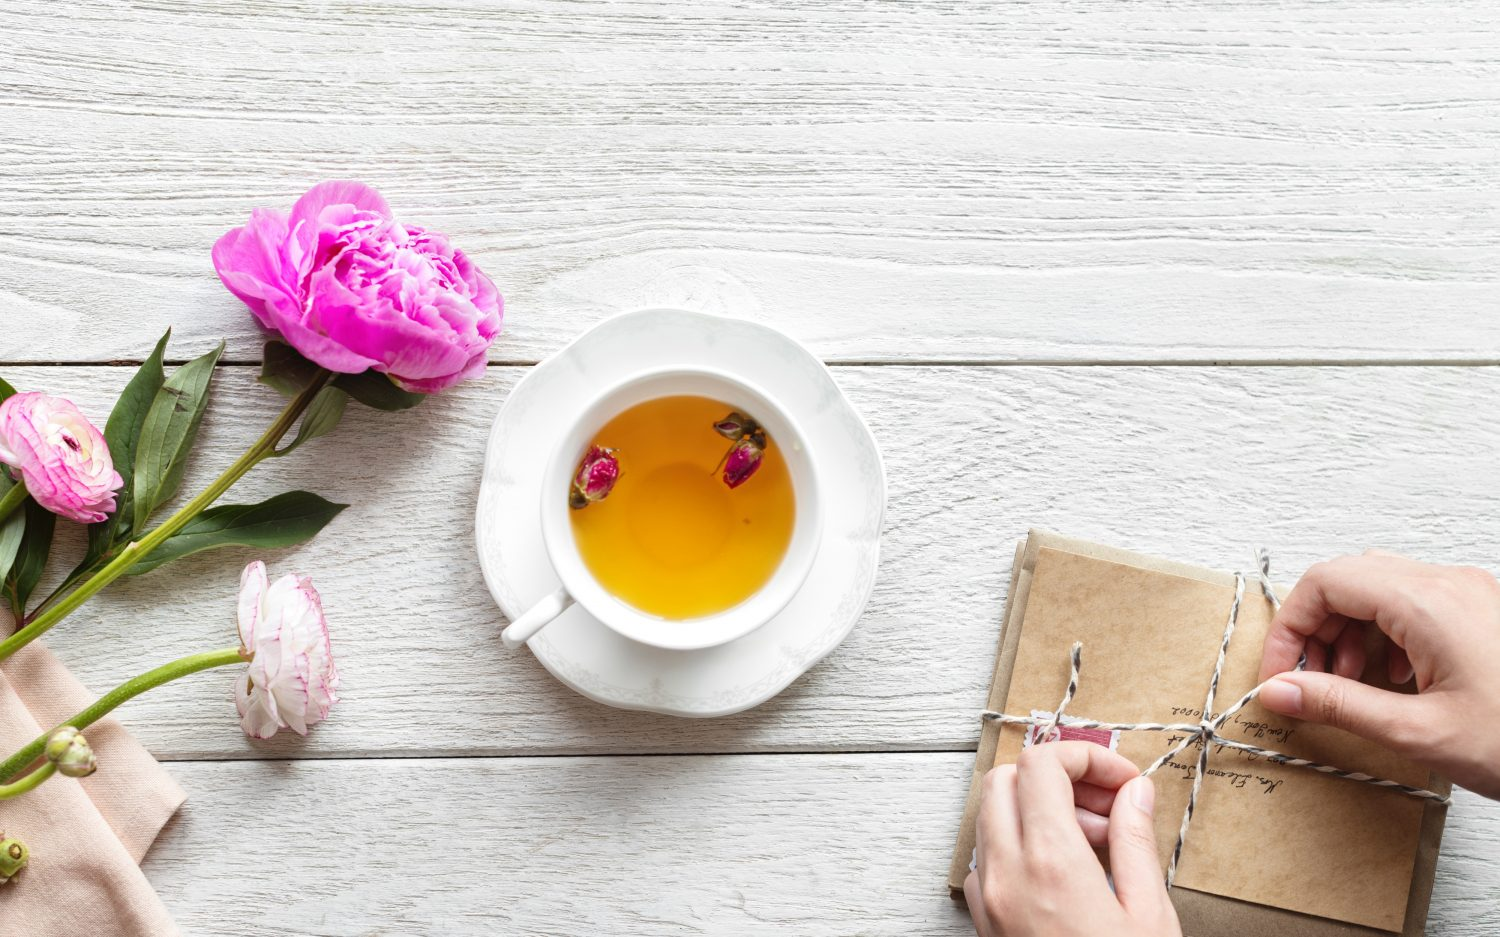 china cup of tea on white wooden table with pink carnation lying next to it